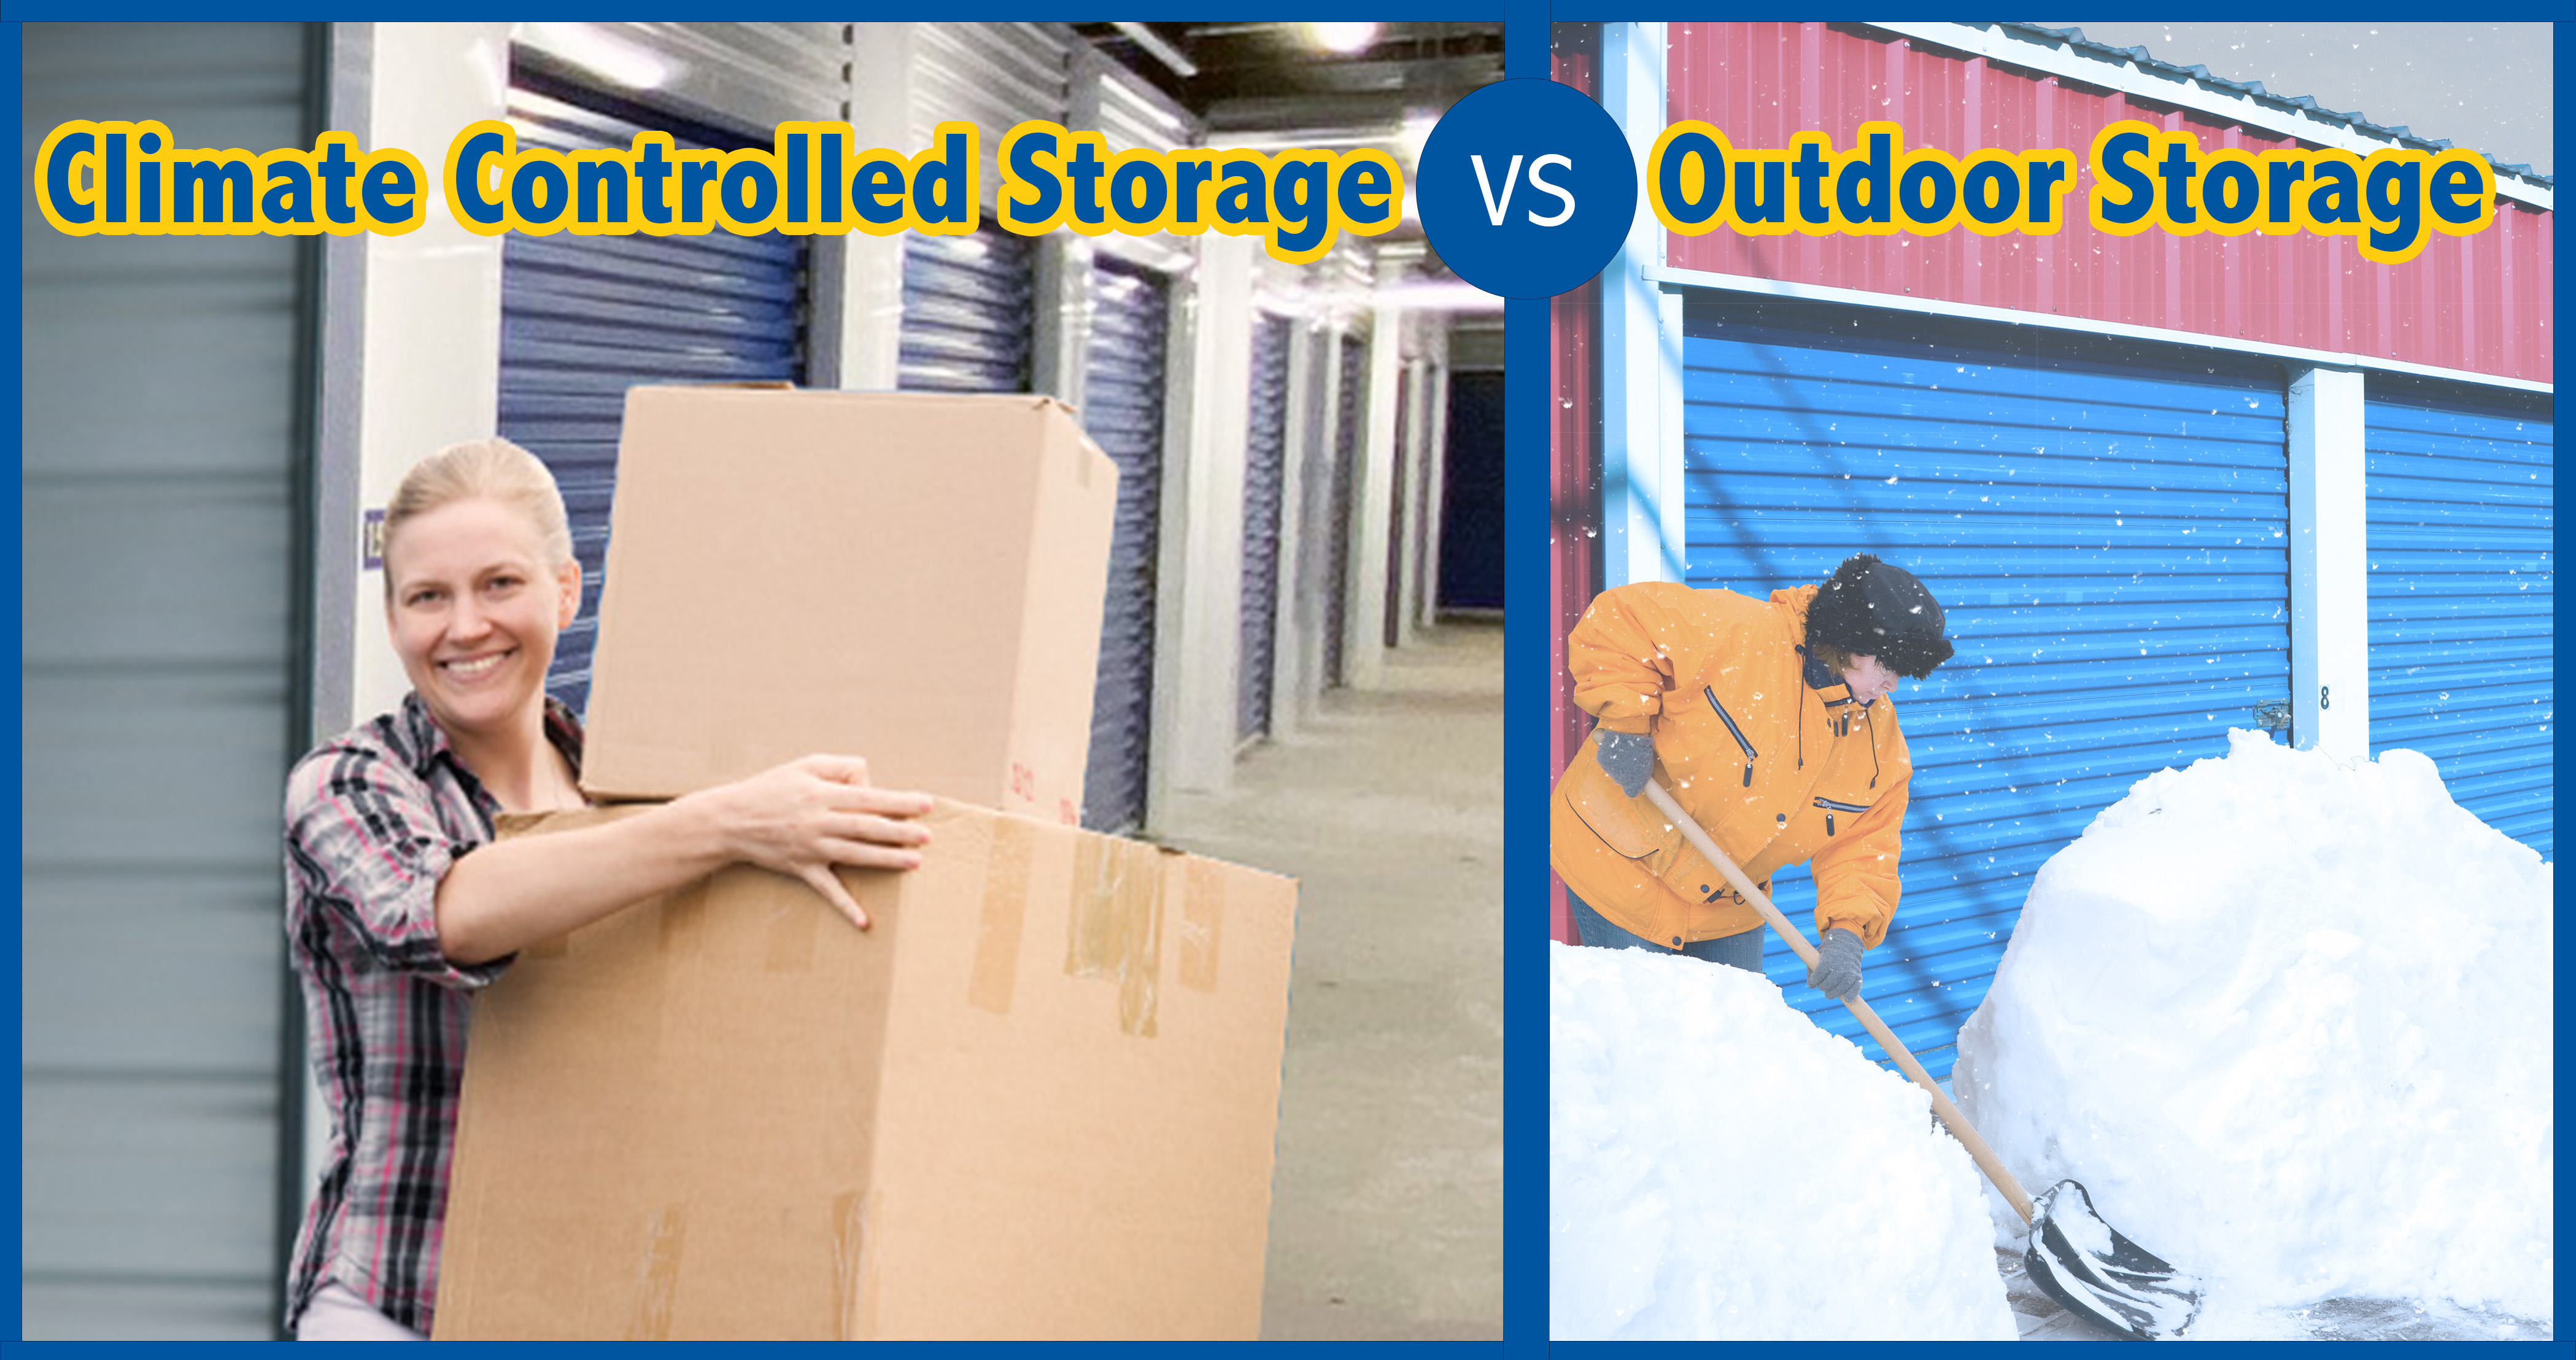 Climate Controlled Storage vs Outdoor Storage